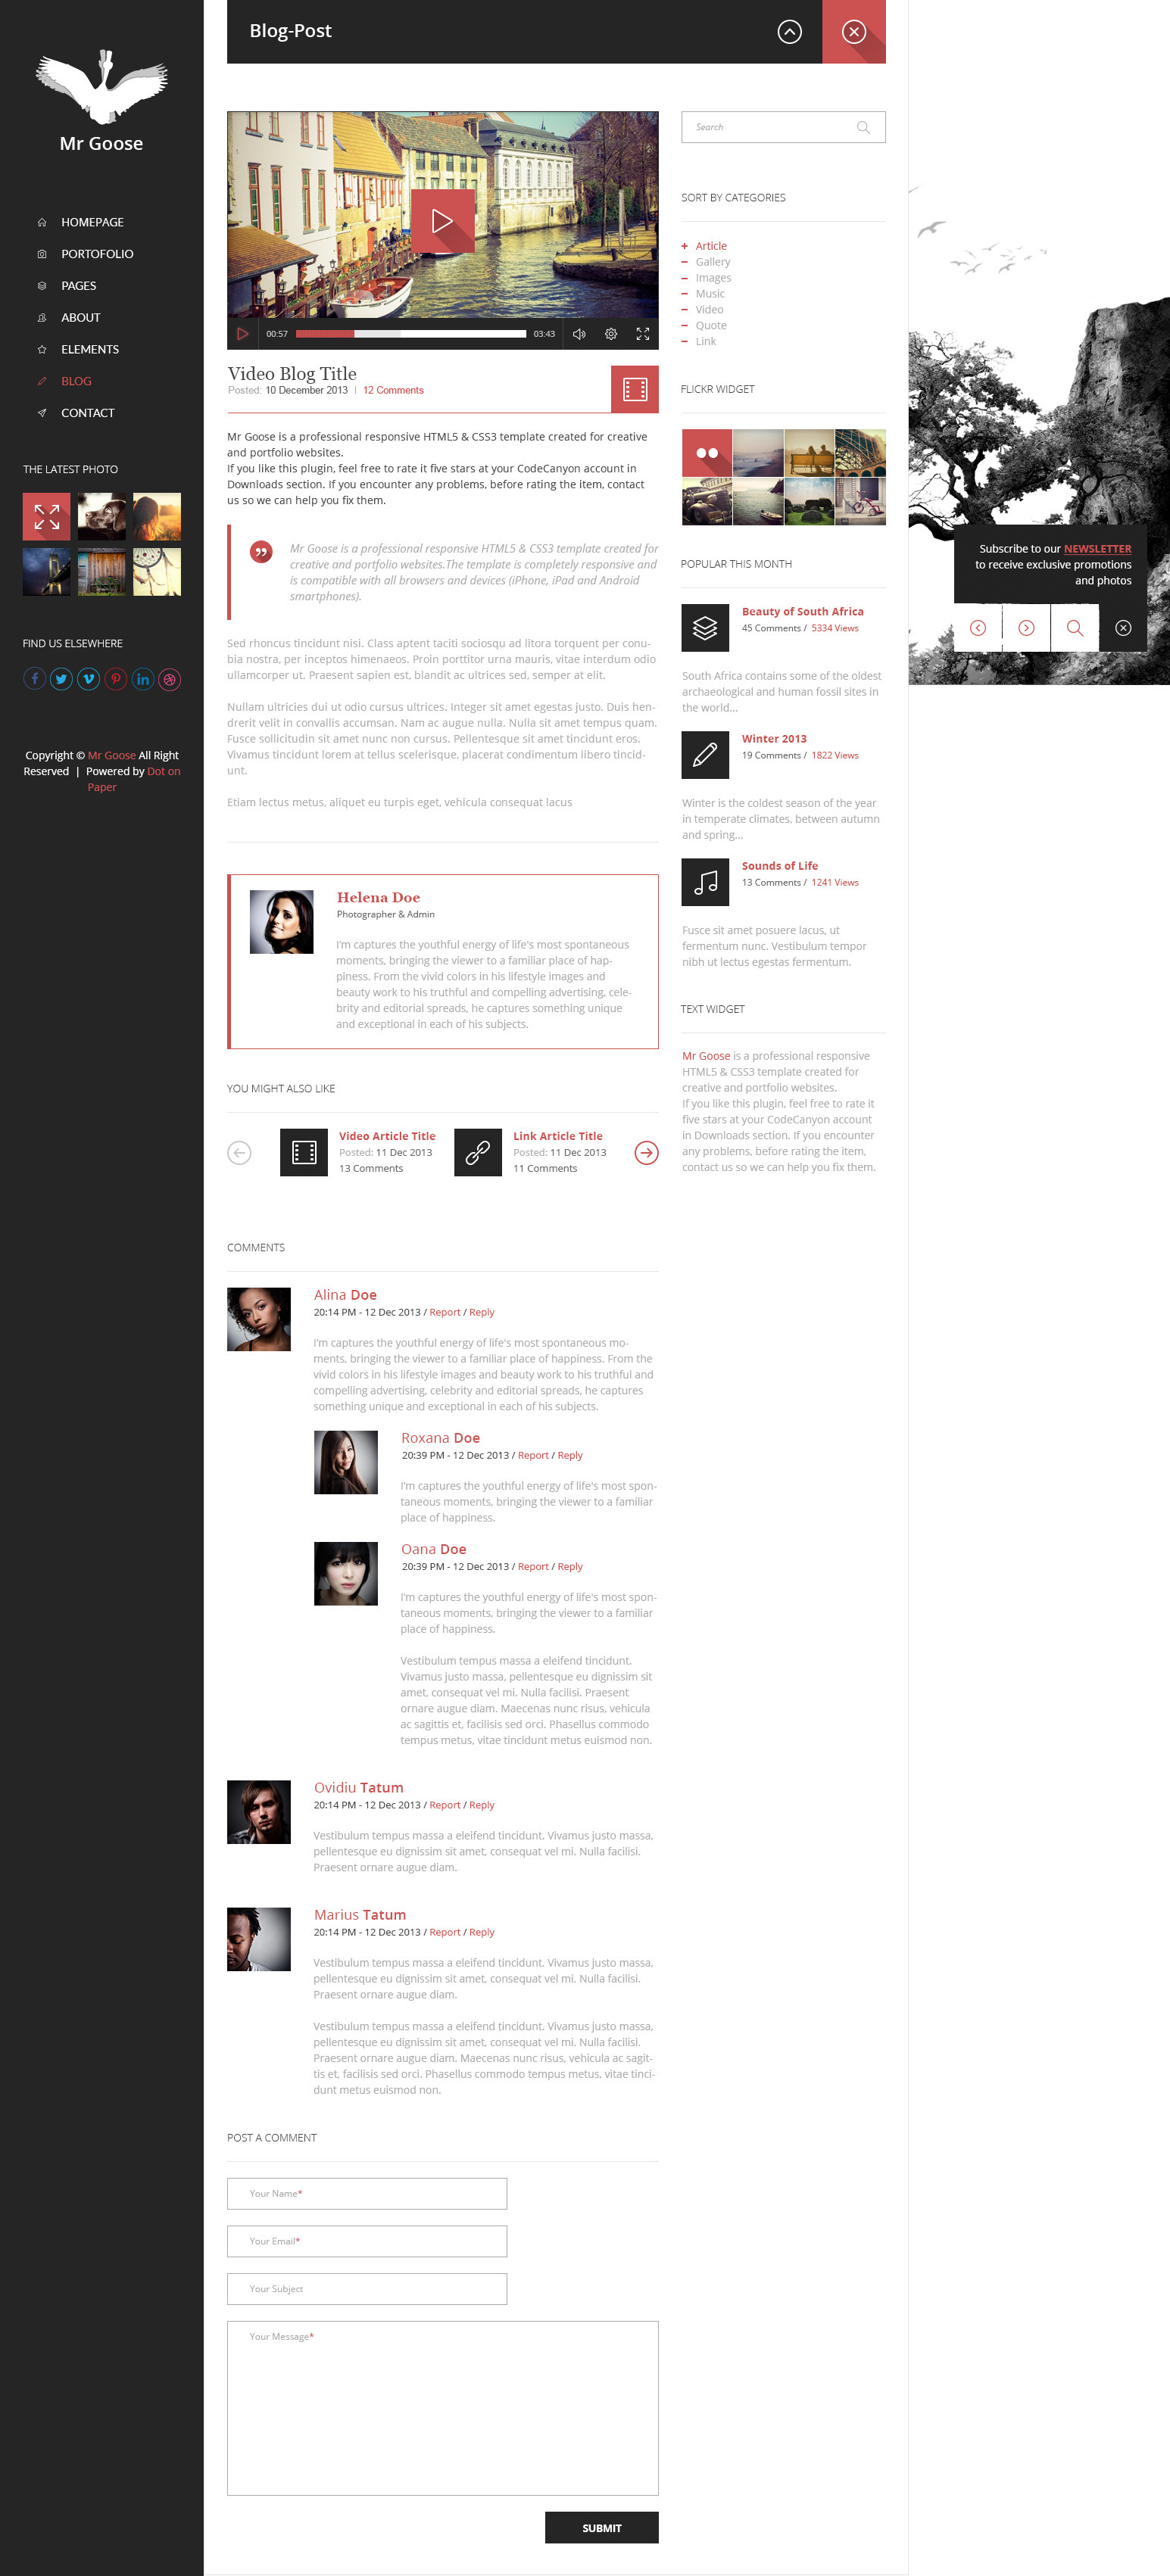 Mr Goose - Creative PSD Template - Desktop - Blog Post